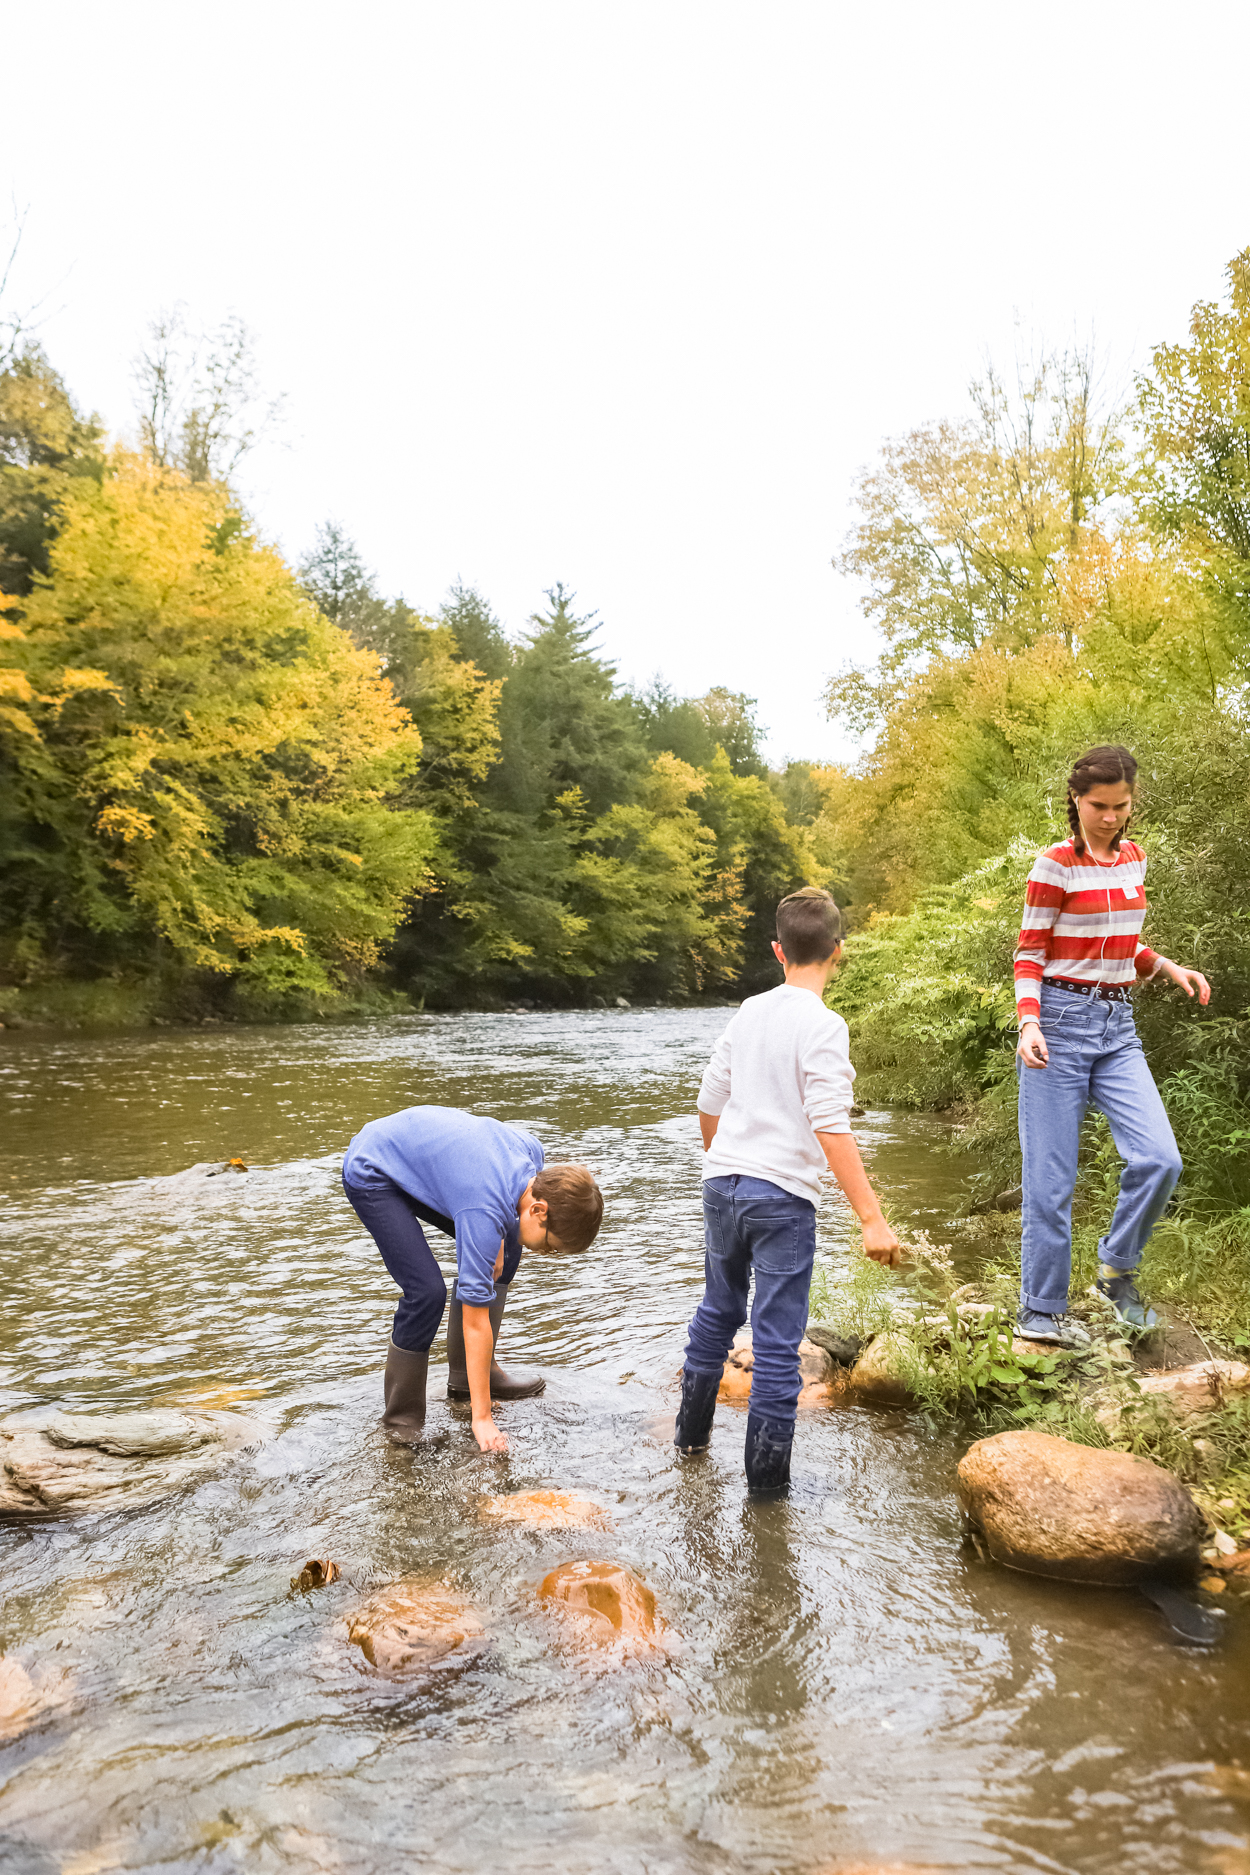 Kids playing in Ottauquechee River during the Fall in Vermont